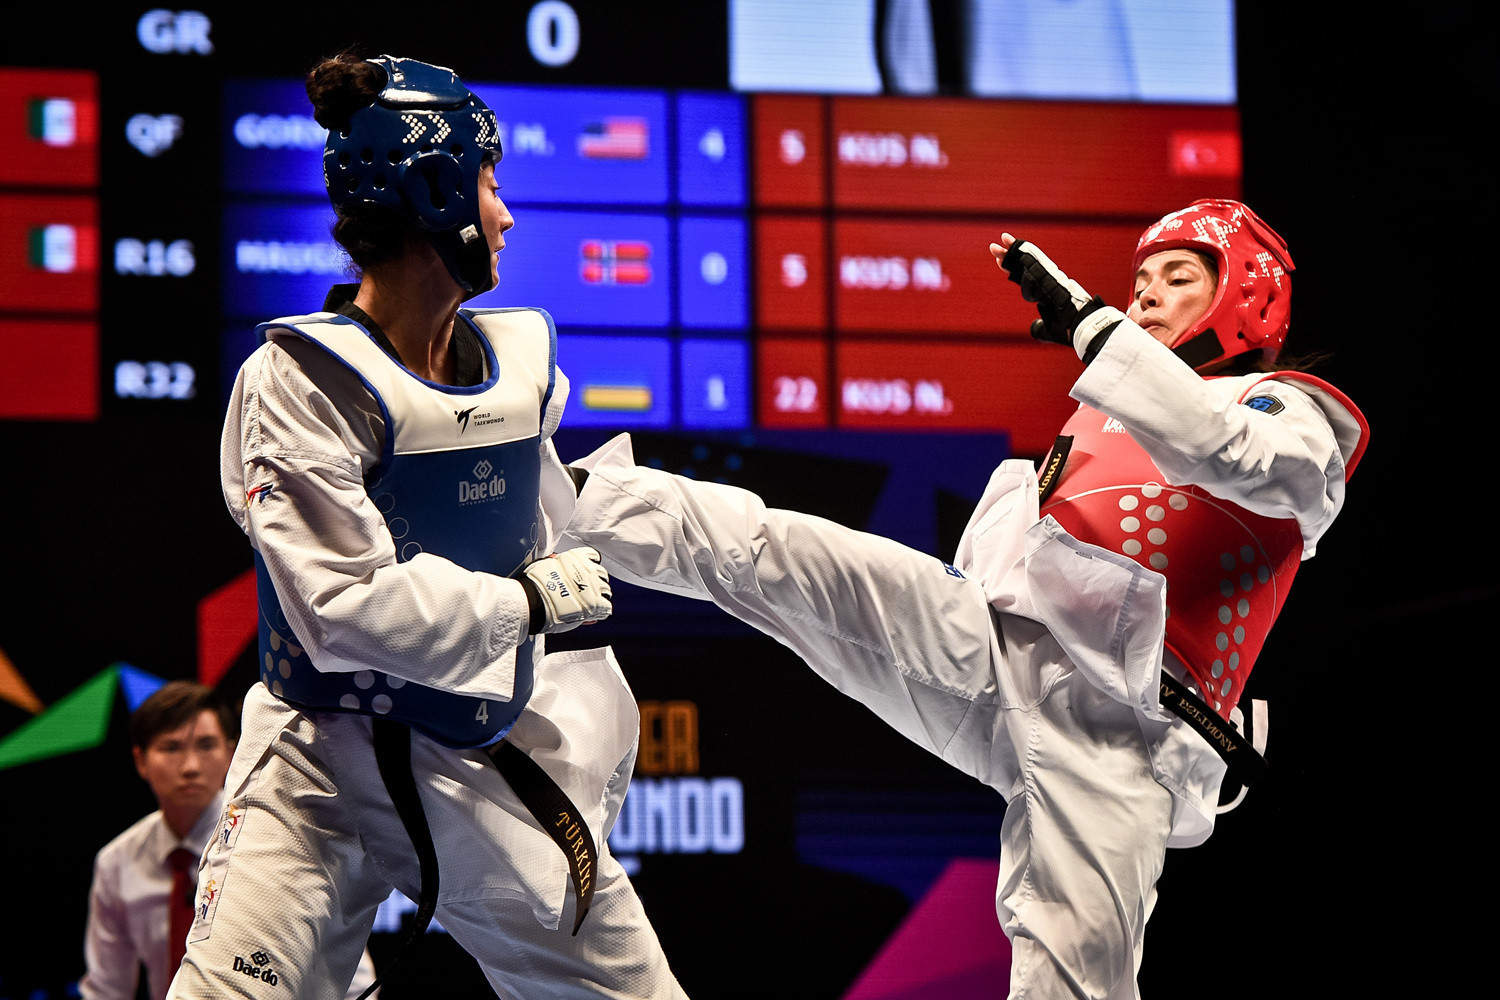 Mexico's Maria Espinoza beat Turkey's Nafia Kuş to reach the women's under-73kg final ©World Taekwondo